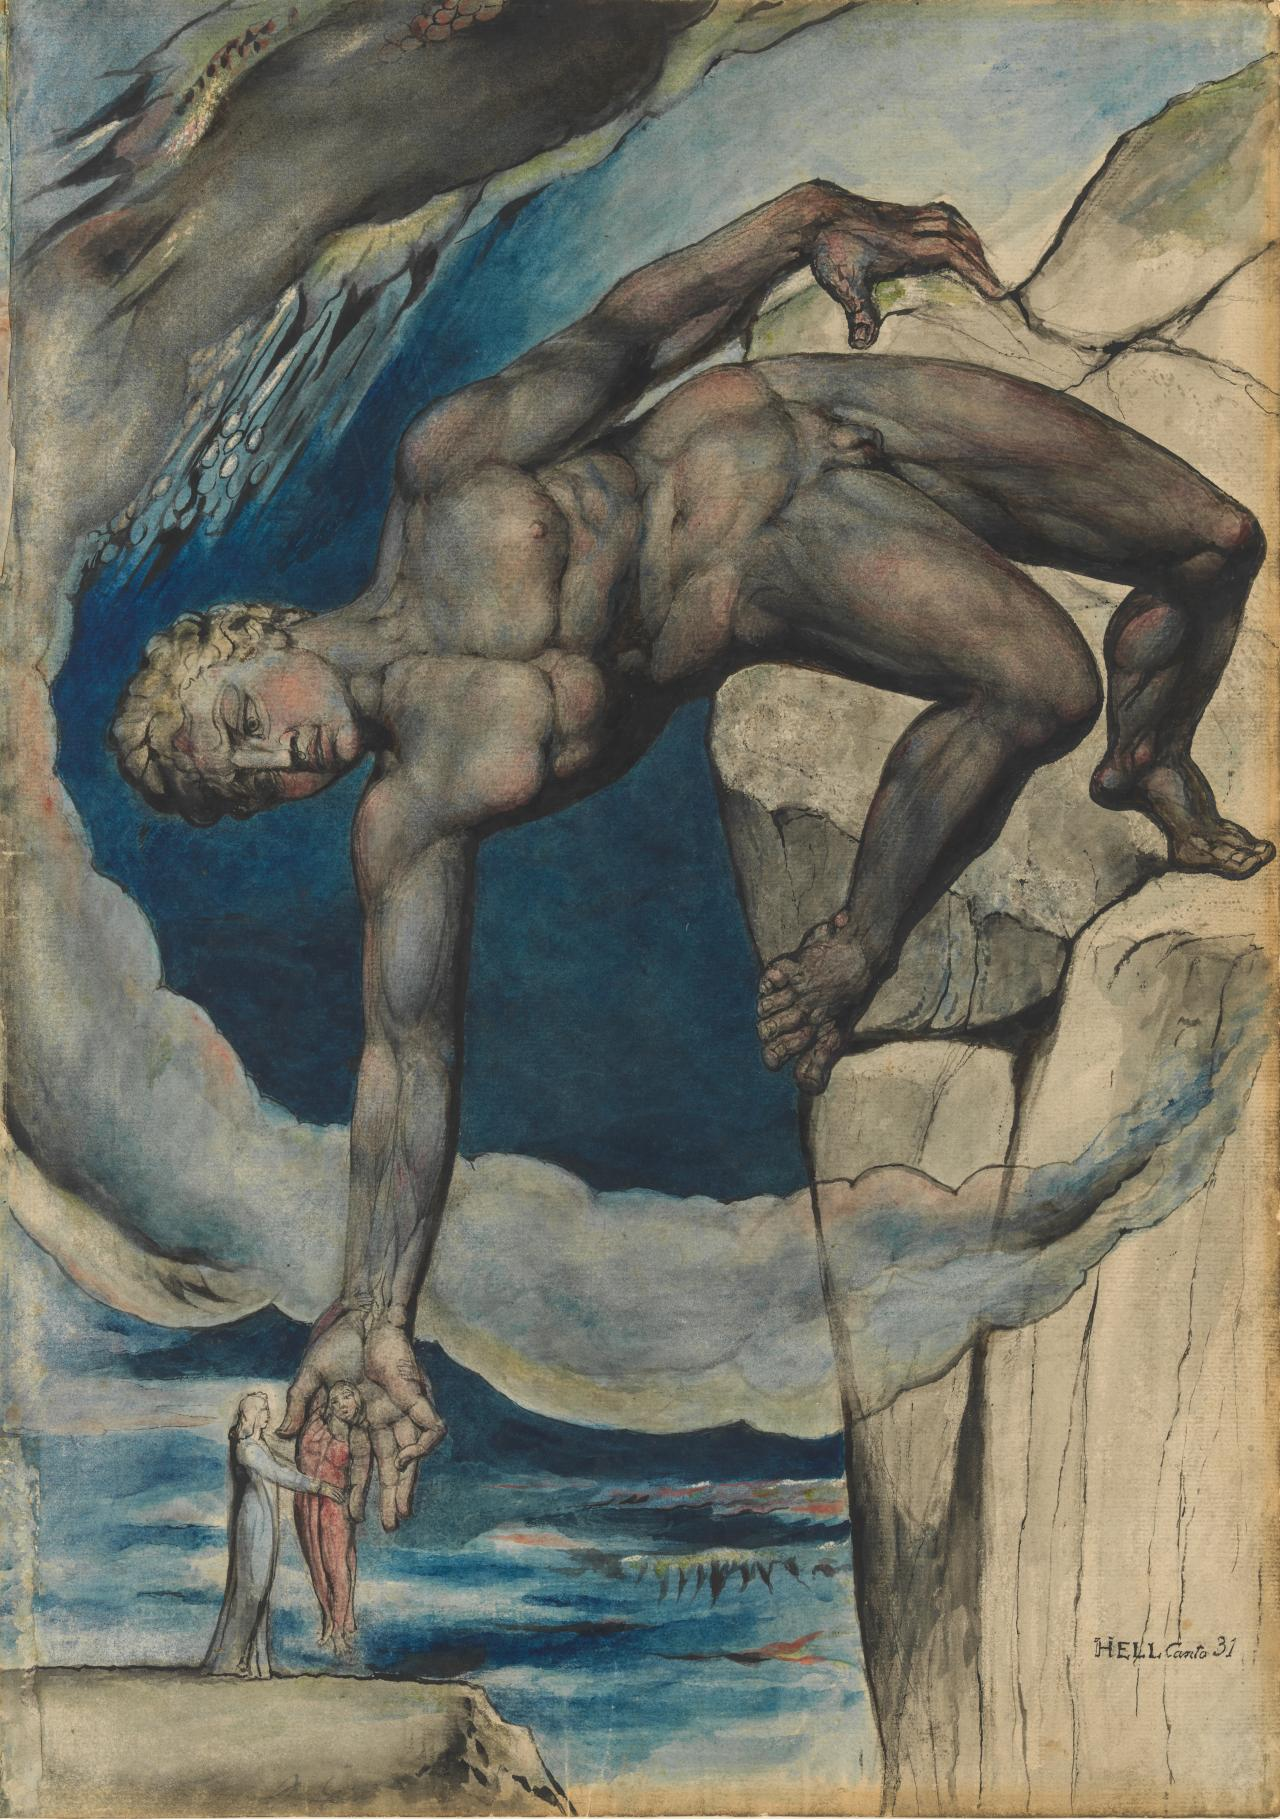 fig. 4 William Blake Antaeus setting down Dante and Virgil in the Last Circle of Hell  (Inferno XXXI, 112–43) Illustrations for The Divine Comedy by Dante Alighieri, 1824–27 pen and ink and watercolour over pencil and black chalk, with sponging and scratching out 52.6 x 37.4 cm  Butlin 812.63; Butlin & Gott 27 National Gallery of Victoria, Melbourne Felton Bequest, 1920 (1012-3)  Modelling to delineate musculature using initial tonal drawing followed by application of colour